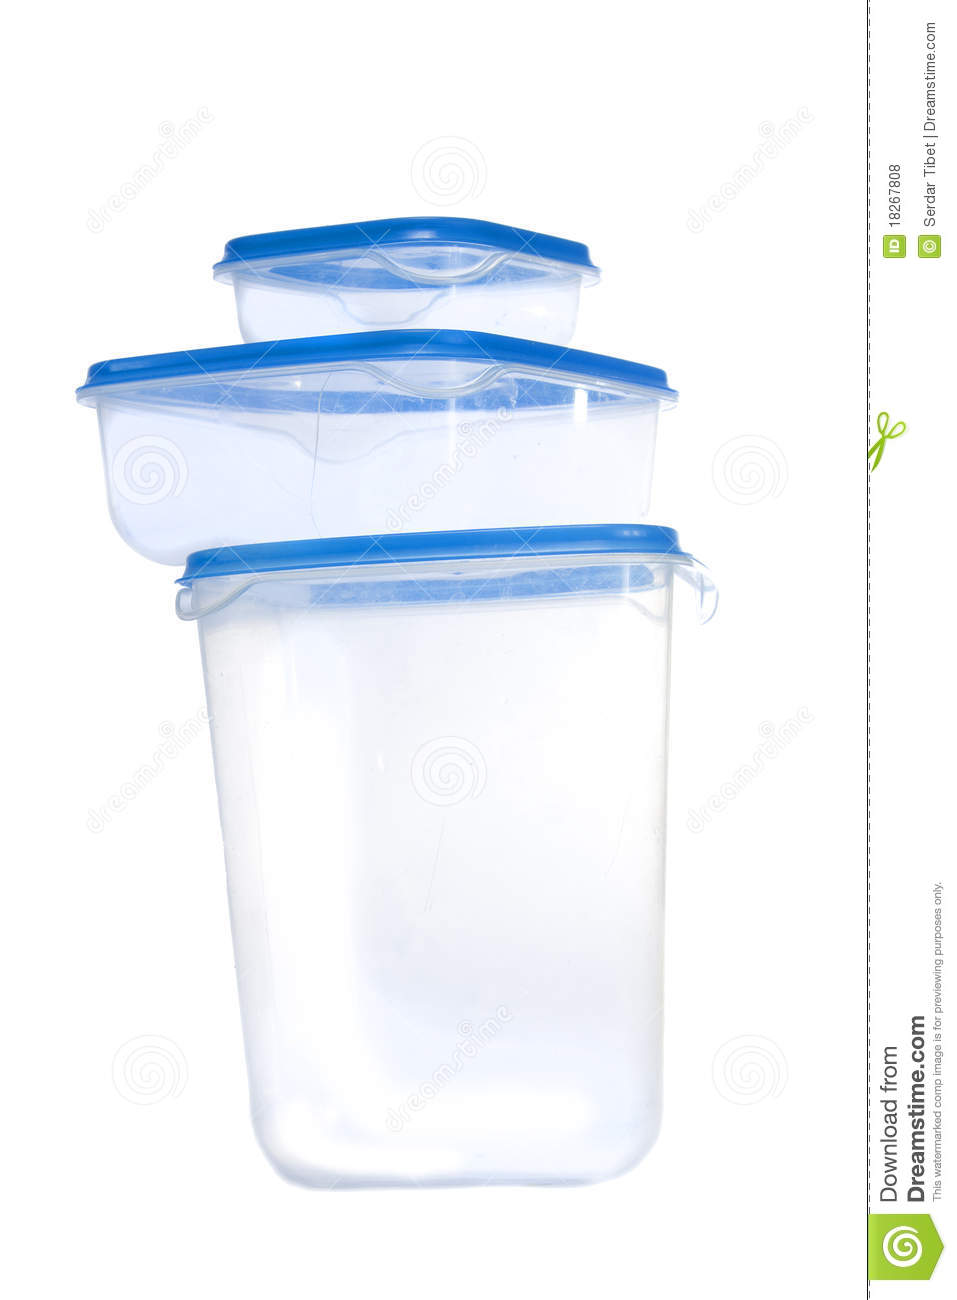 Plastic Kitchen Containers Royalty Free Stock Photos Image 18267808